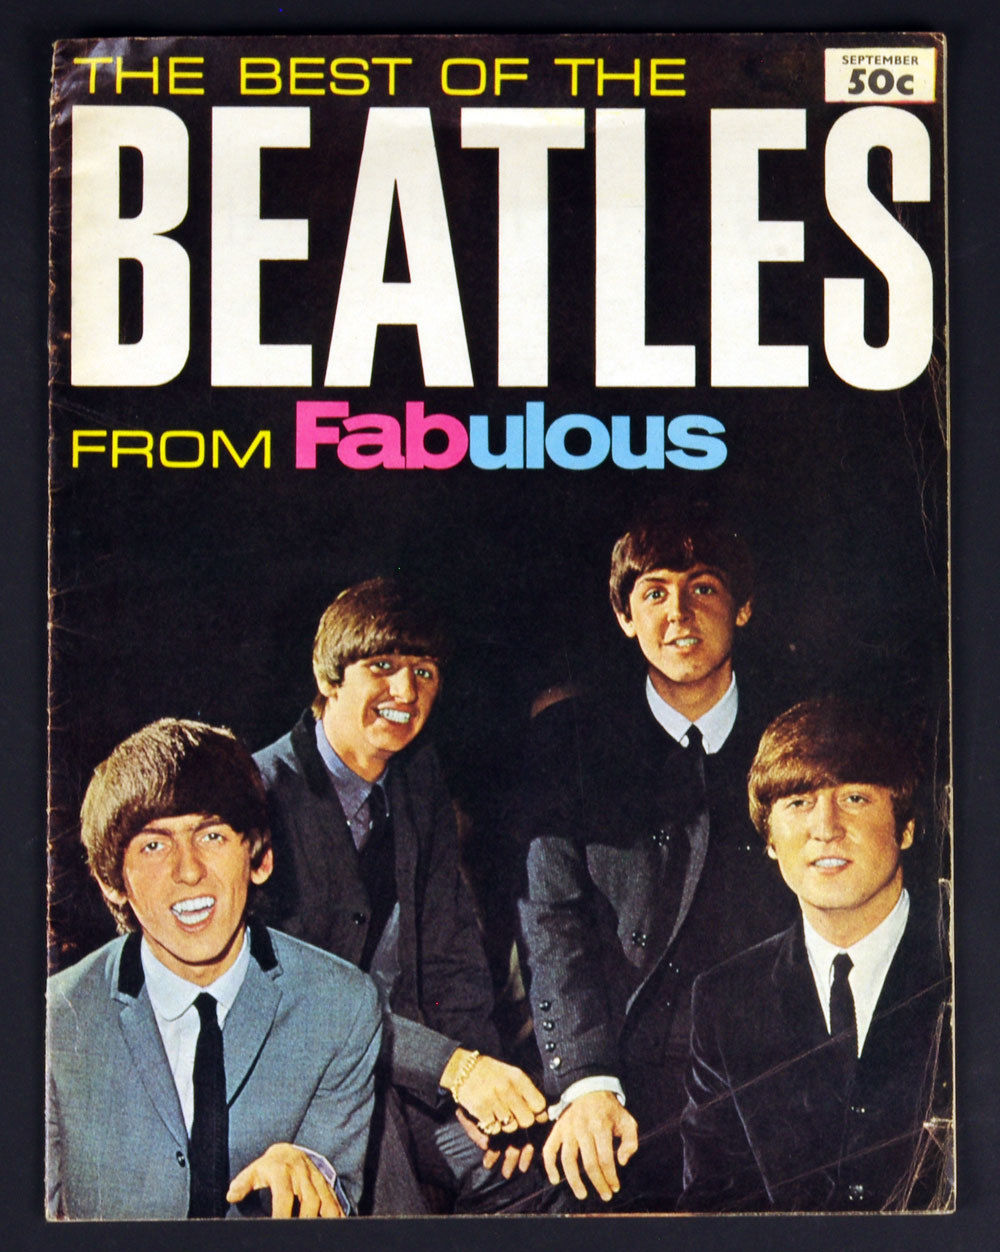 The Beatles Book The Best Of The Beatles From Fabulous 1964 Sep